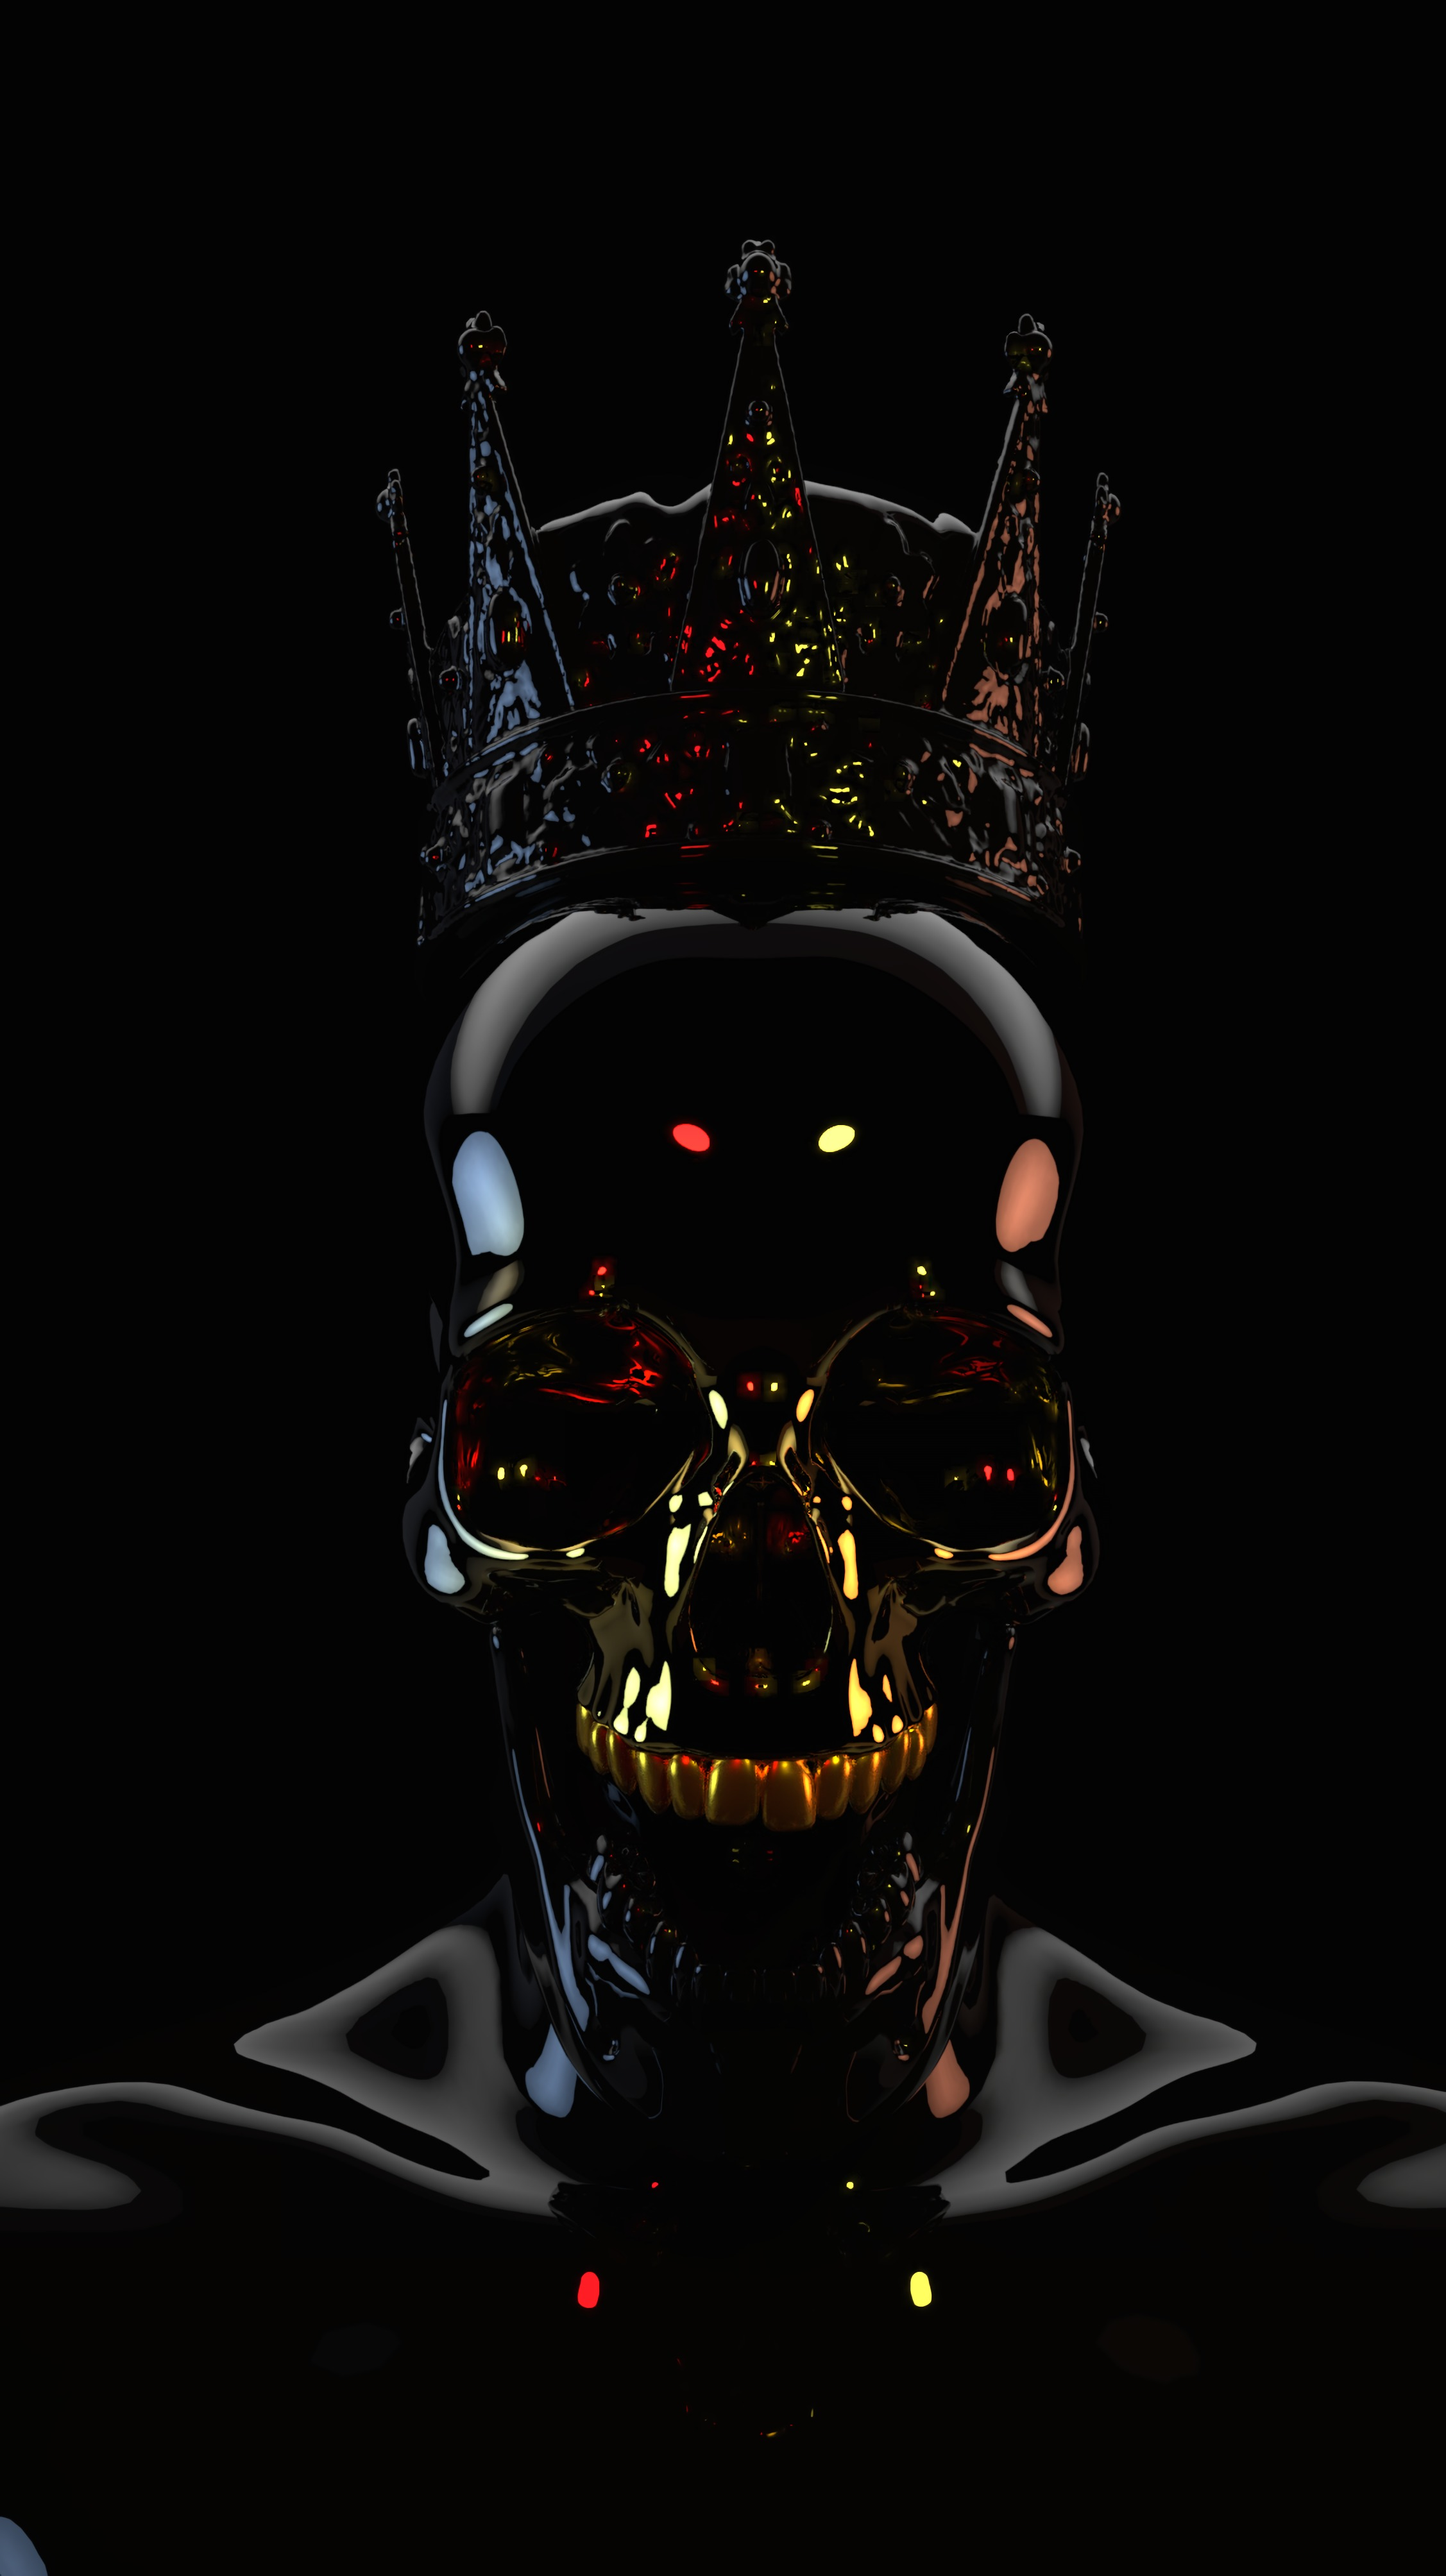 Download Wallpaper 2254x4016 Skull Black Dark Crown 3d